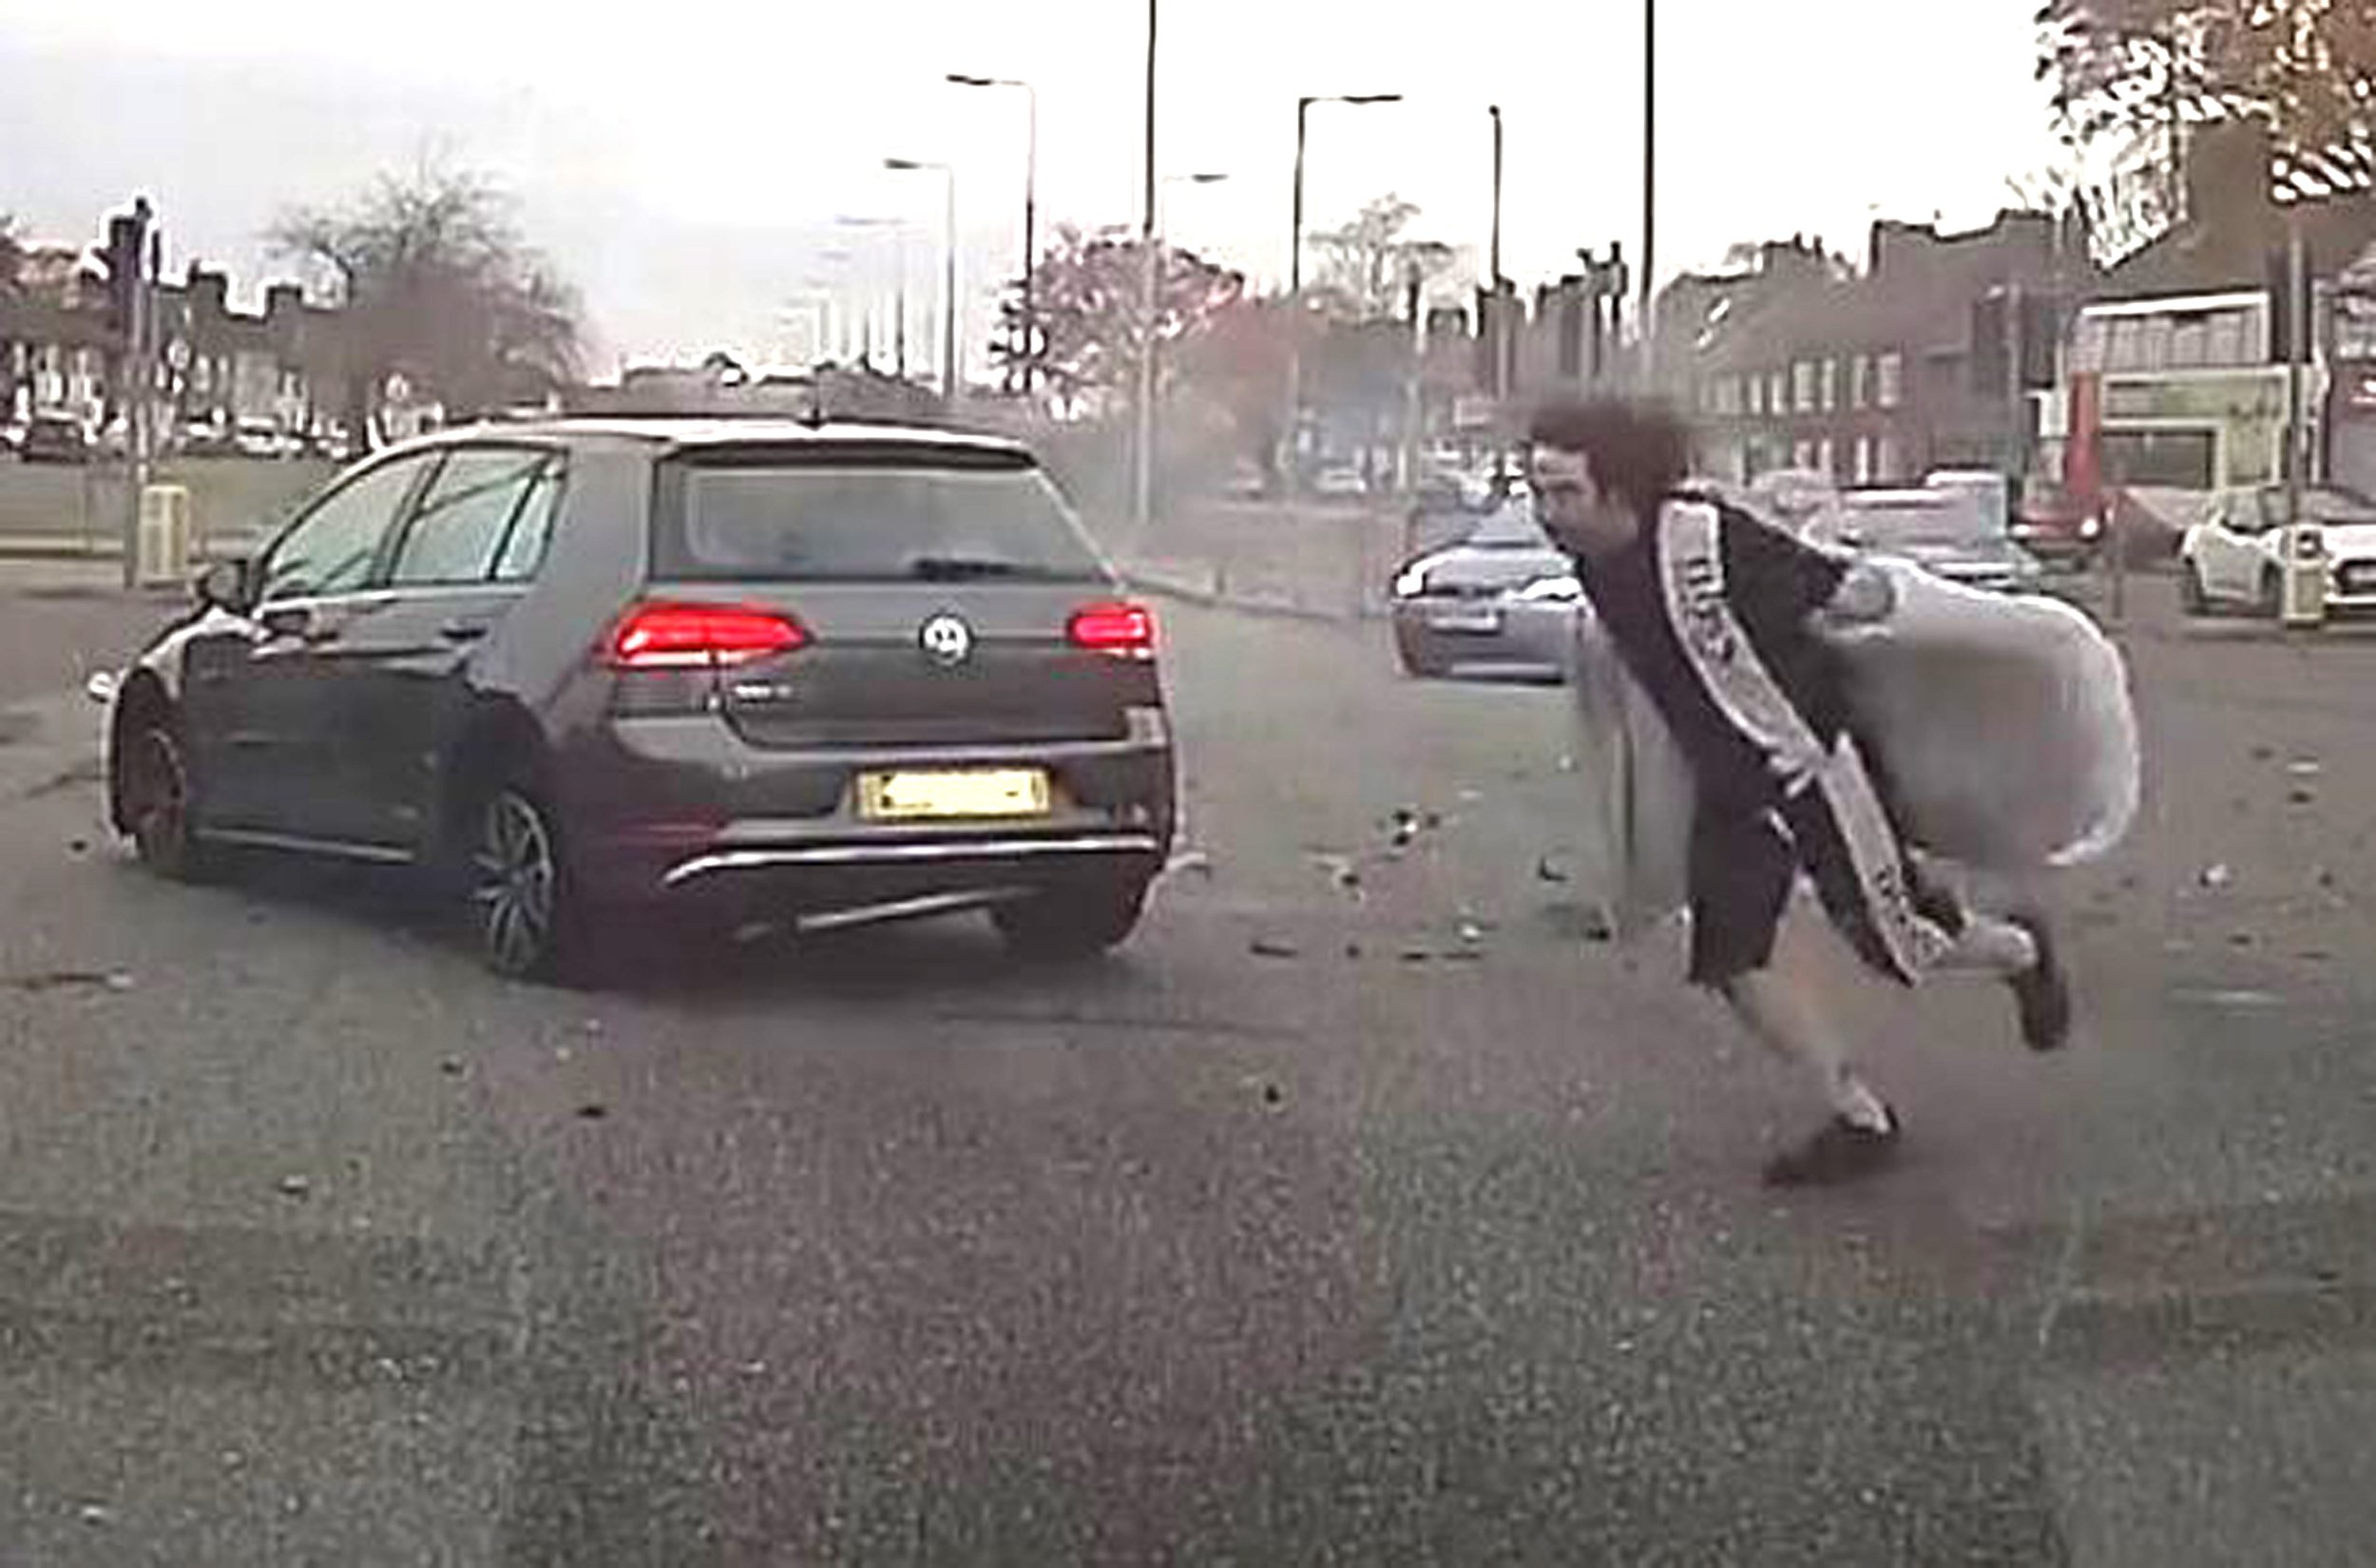 Man in robe flees car crash in East Prescot Road, Liverpool. Friday Nov 9 2018 Credit: Liverpool Echo PAYMENT AT YOUR NORMAL RATE TO REACH PUBLISHING SERVICES LIMITED FAO - ACCOUNTS RECEIVABLE PO BOX 2003 39 OLD HALL STREET LIVERPOOL L69 3FR